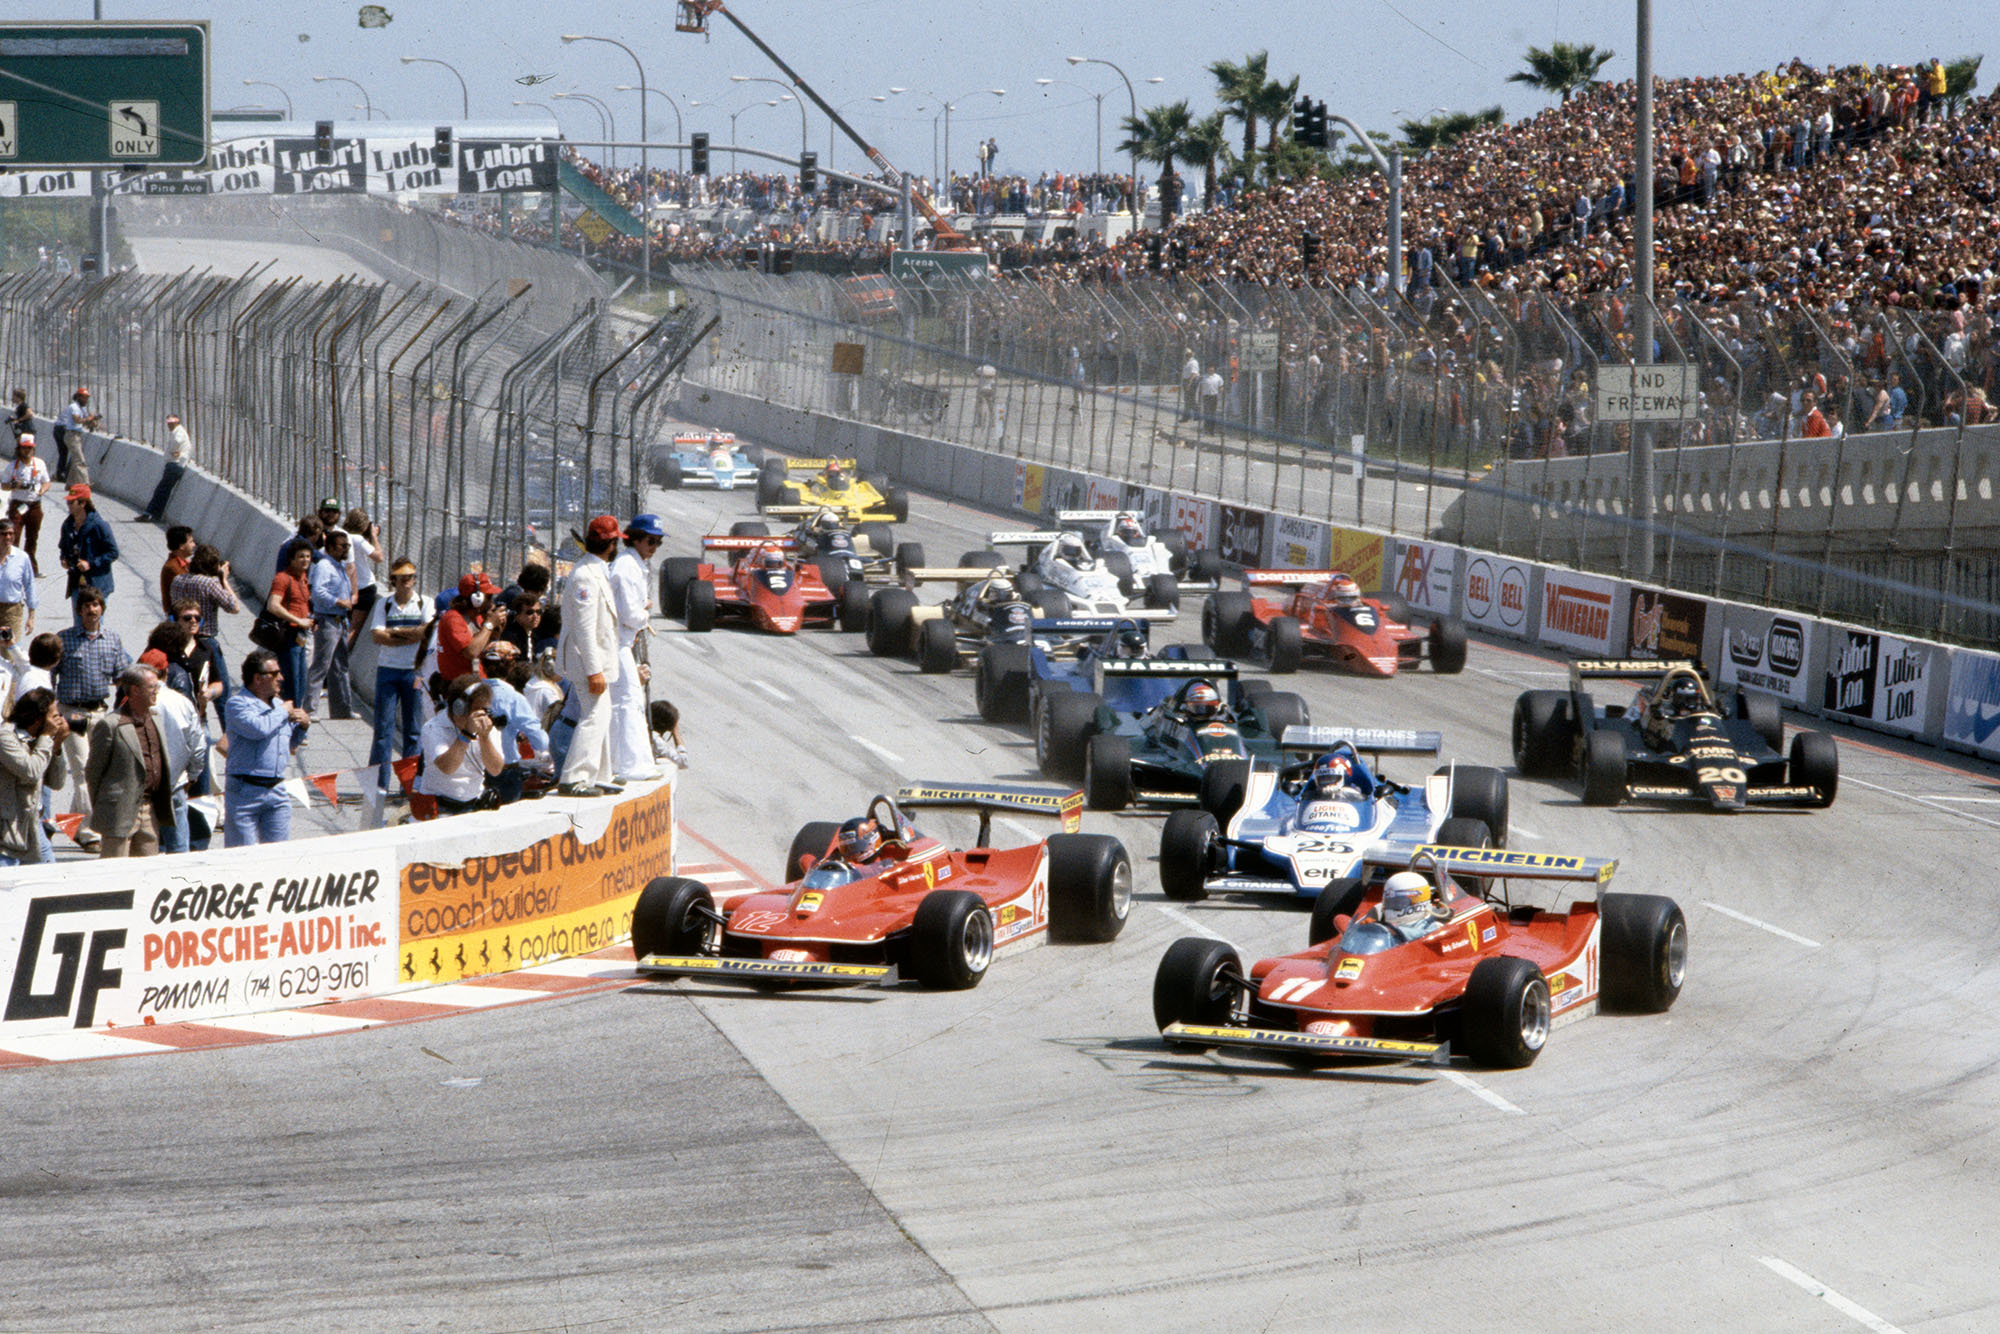 The 1979 United States Grand Prix West gets underway at Long Beach.